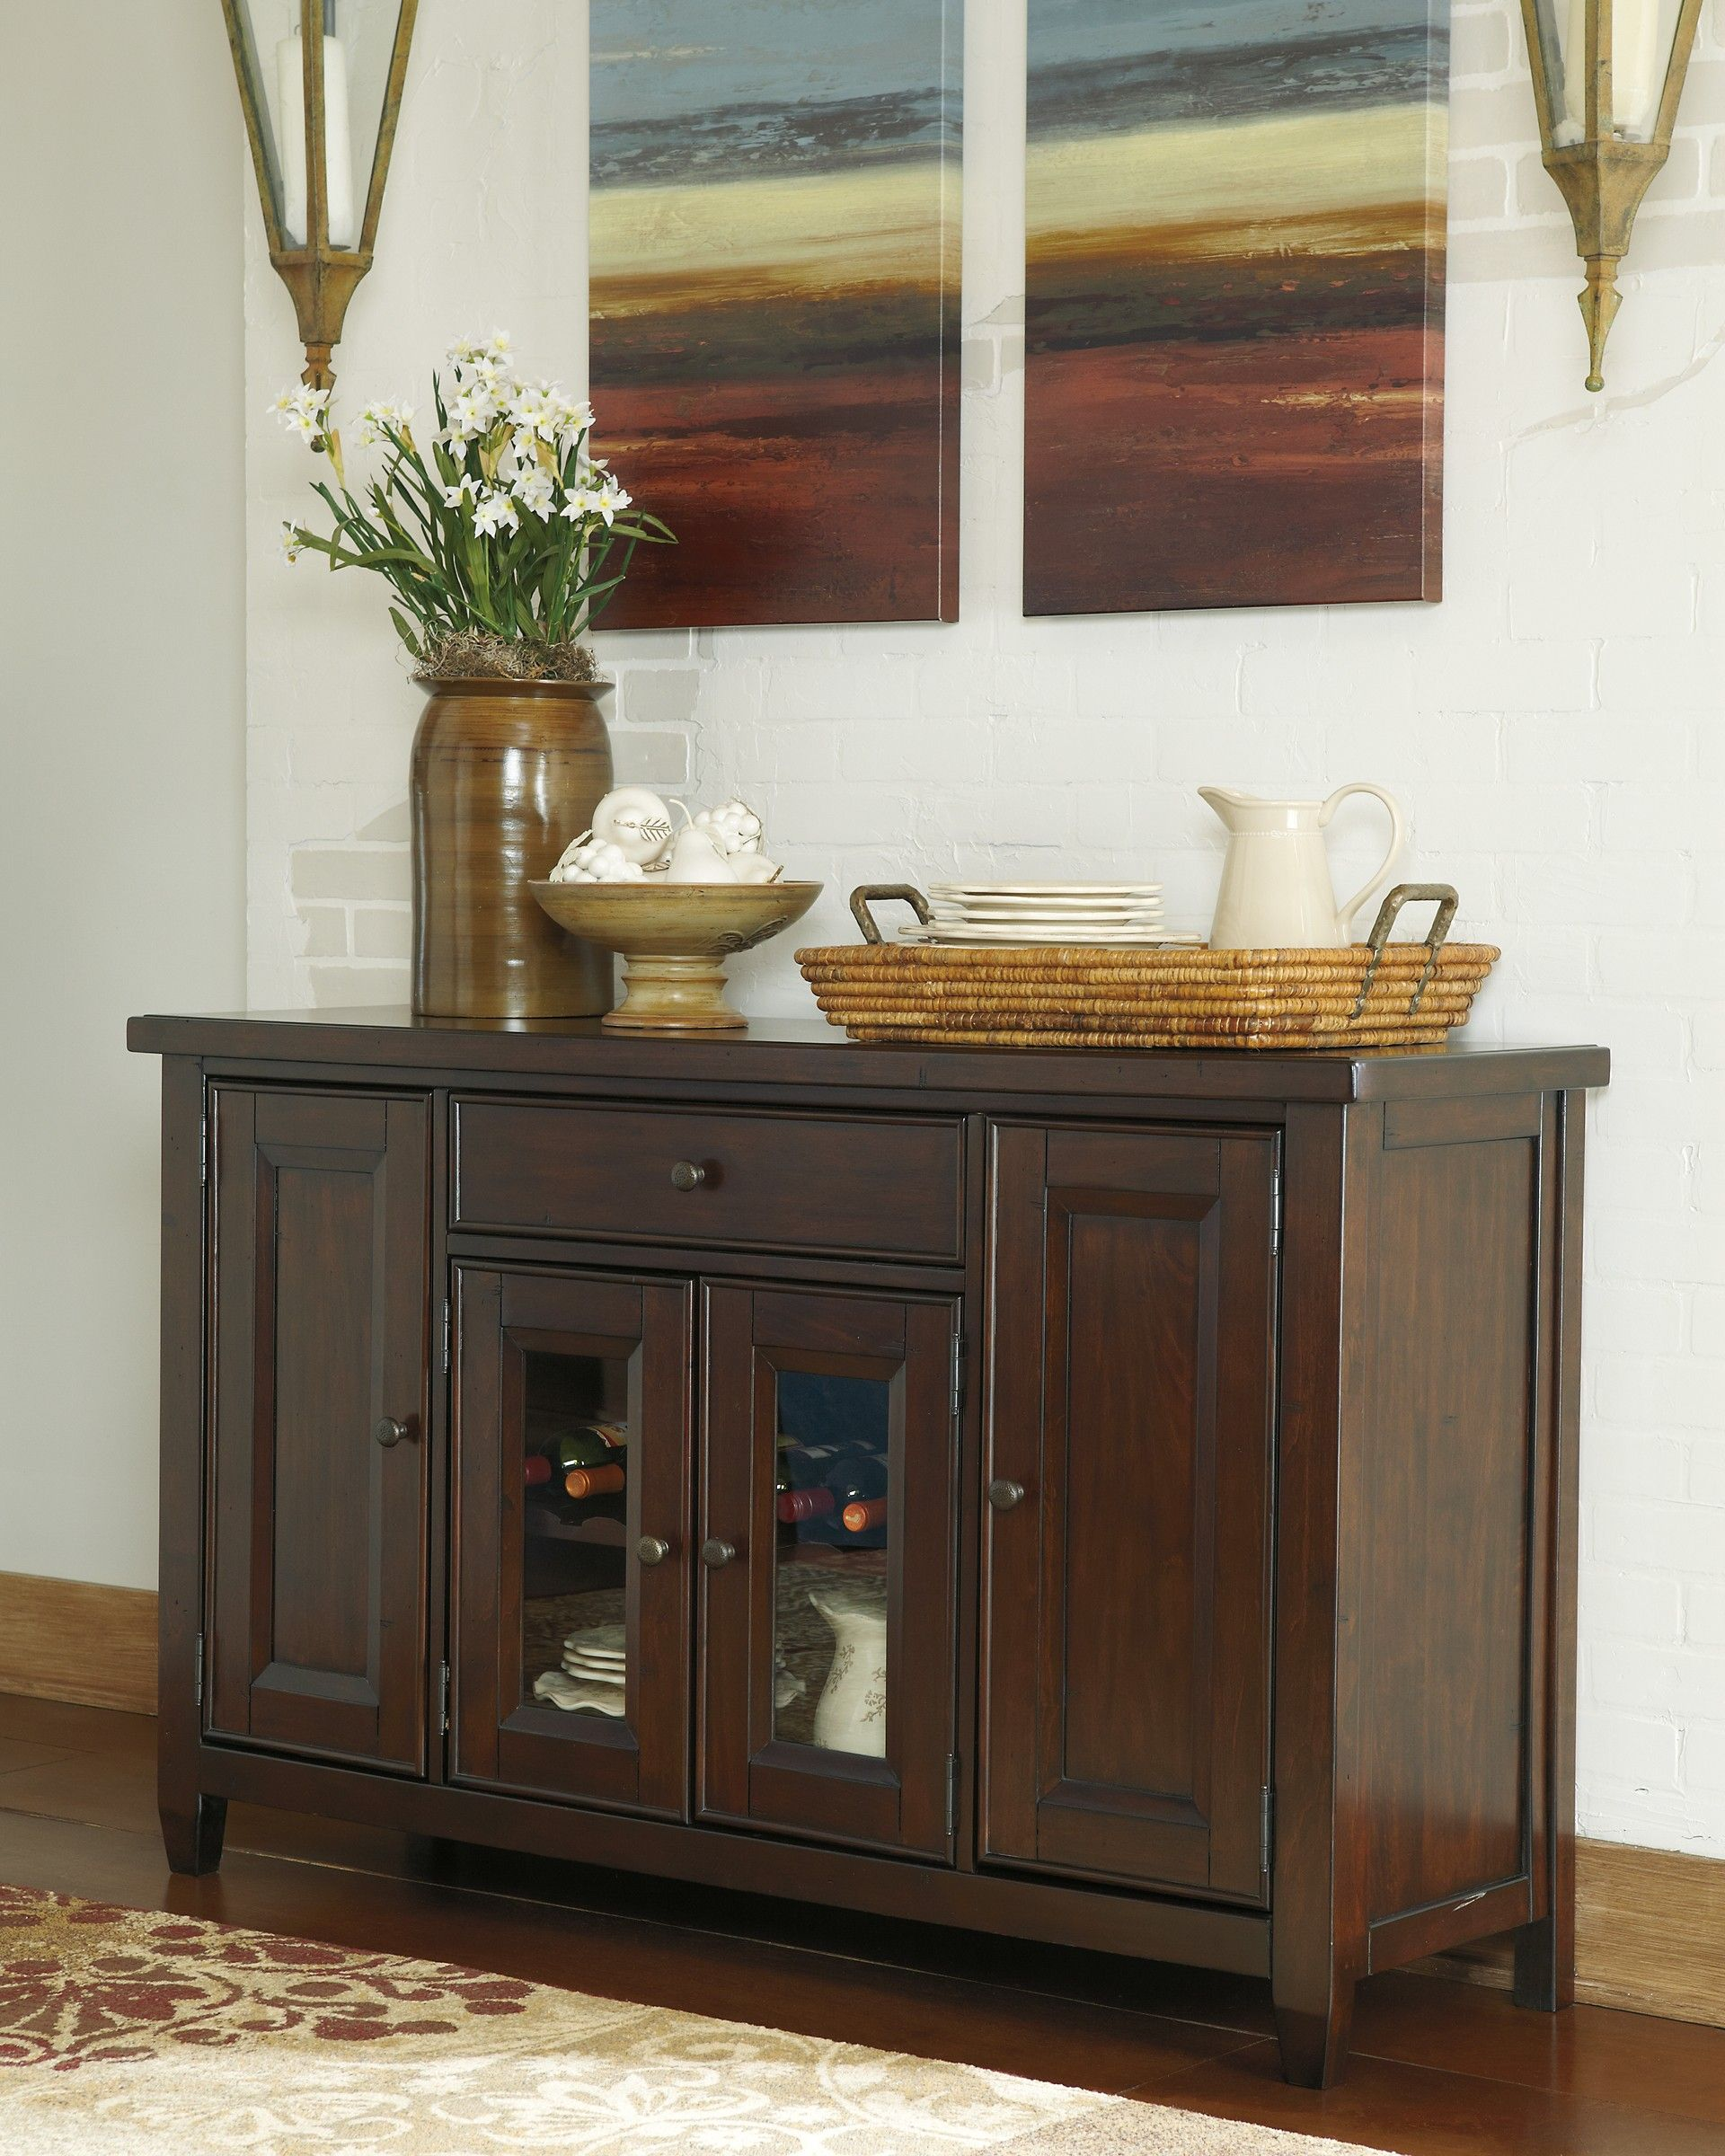 Kitchen Server Furniture Ashley Hindell Park D695 60 Millennium Dining Room Server Dining